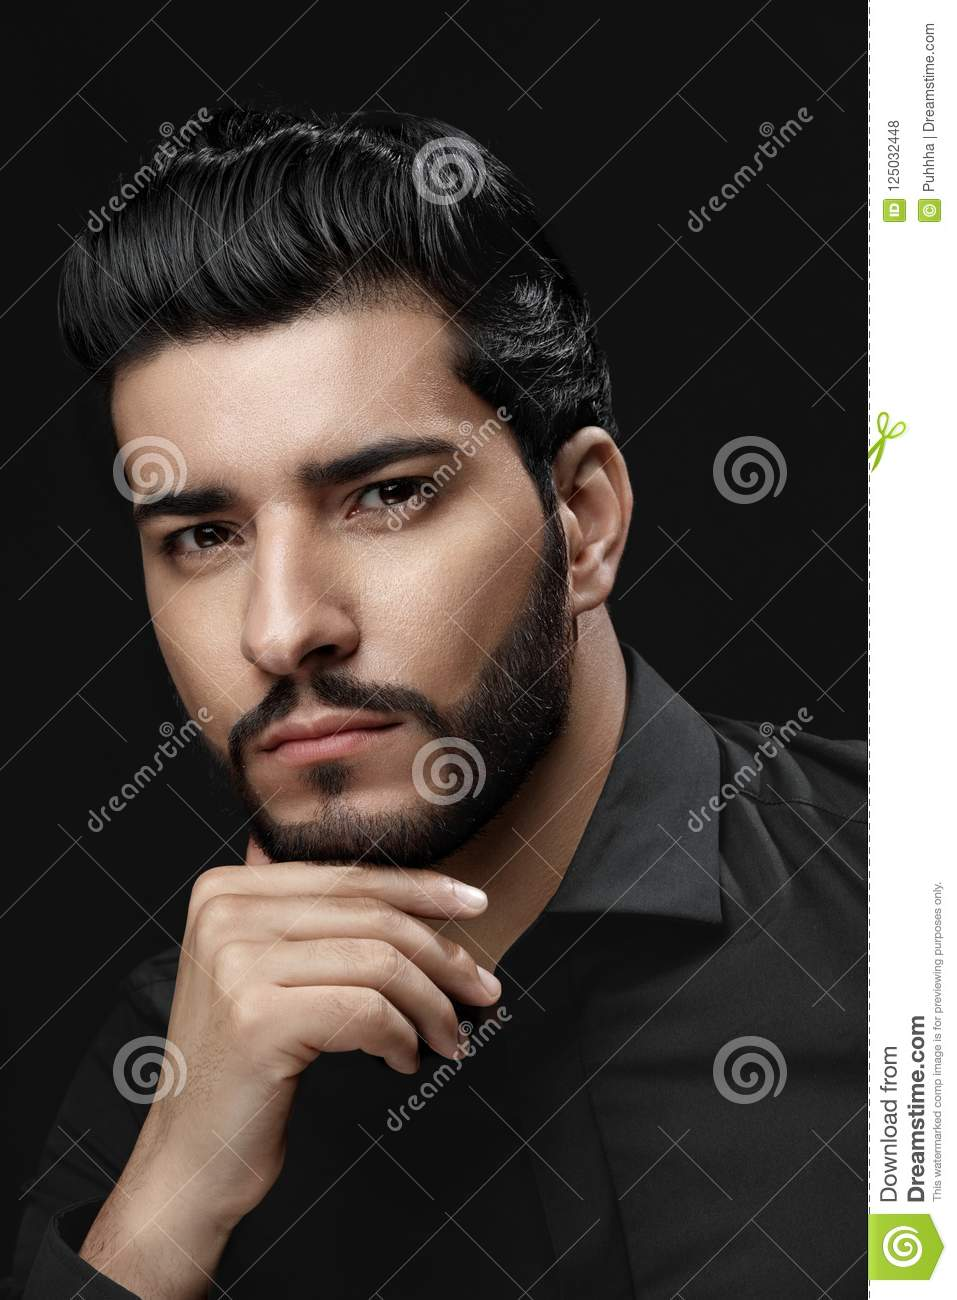 Men Haircut Man With Hair Style Beard And Beauty Face Portrait